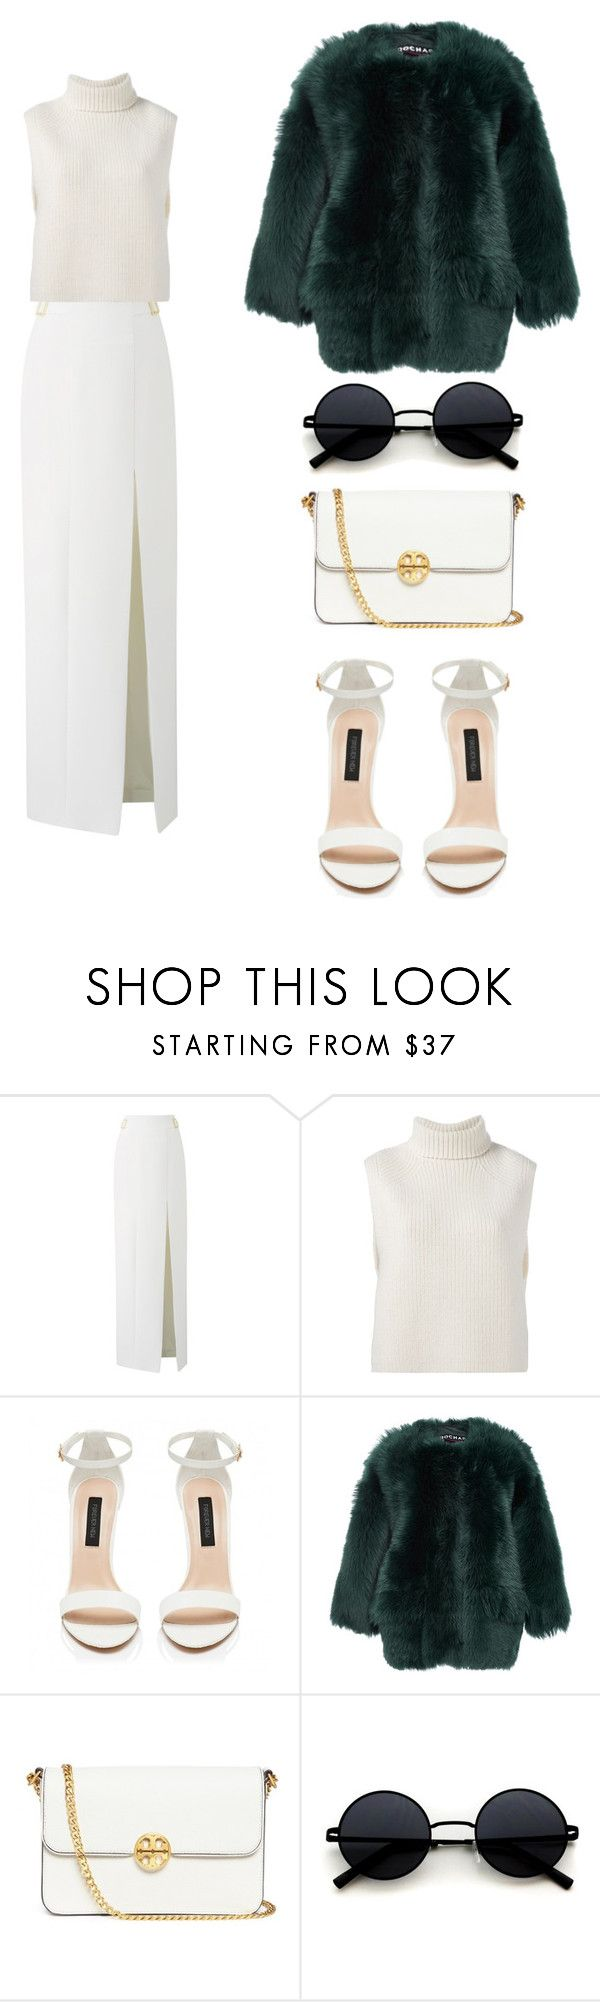 """""""Untitled #2163"""" by dani-gracik on Polyvore featuring Amanda Wakeley, Étoile Isabel Marant, Forever New, Rochas, Tory Burch, girlpower and powerlook"""